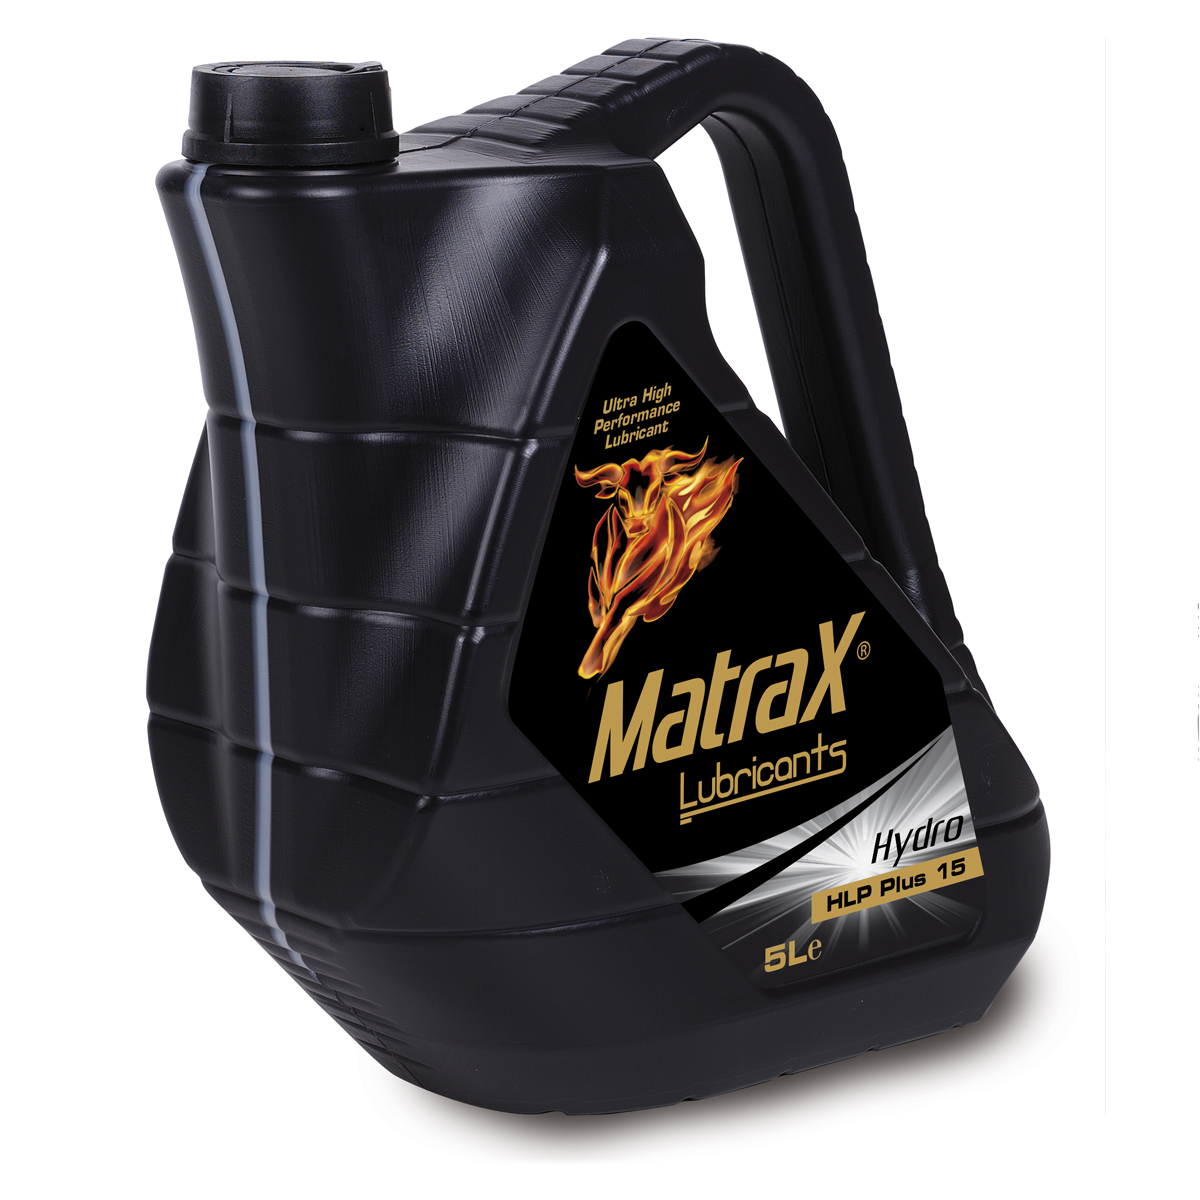 MatraX Hydro HLP Plus 15